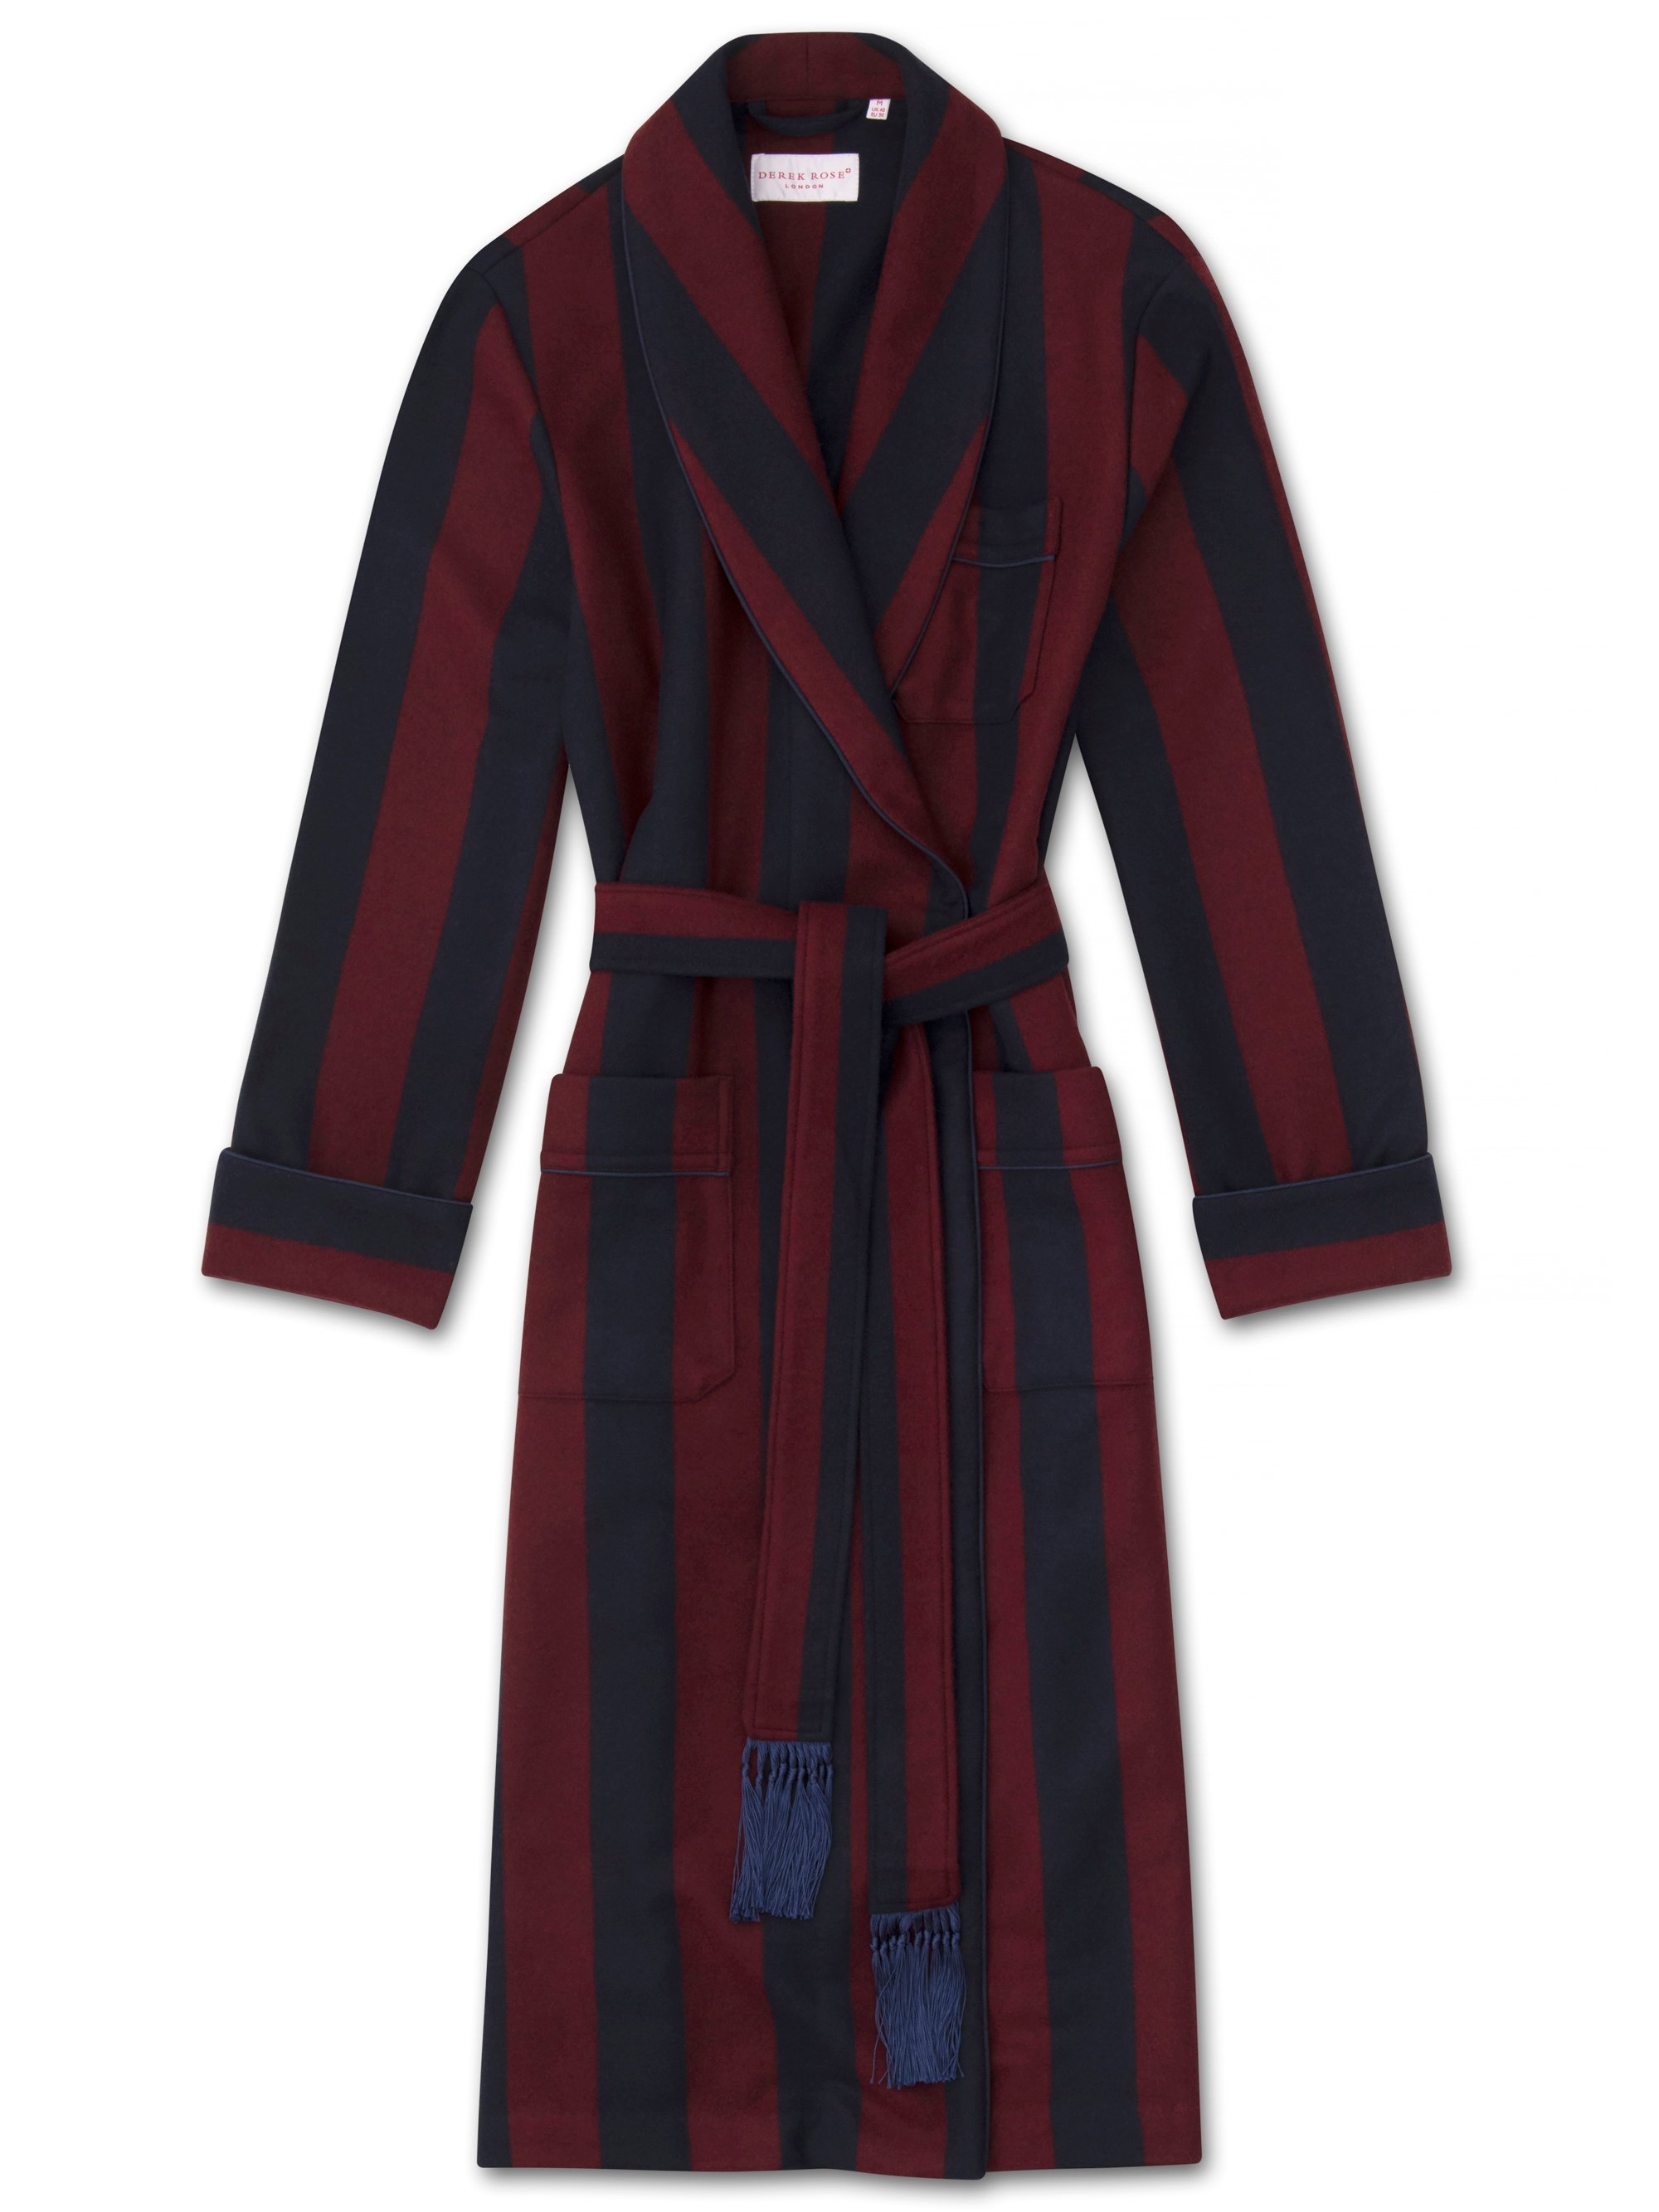 Men's Tasseled Belt Dressing Gown Chiltern 2 Merino Cashmere Navy